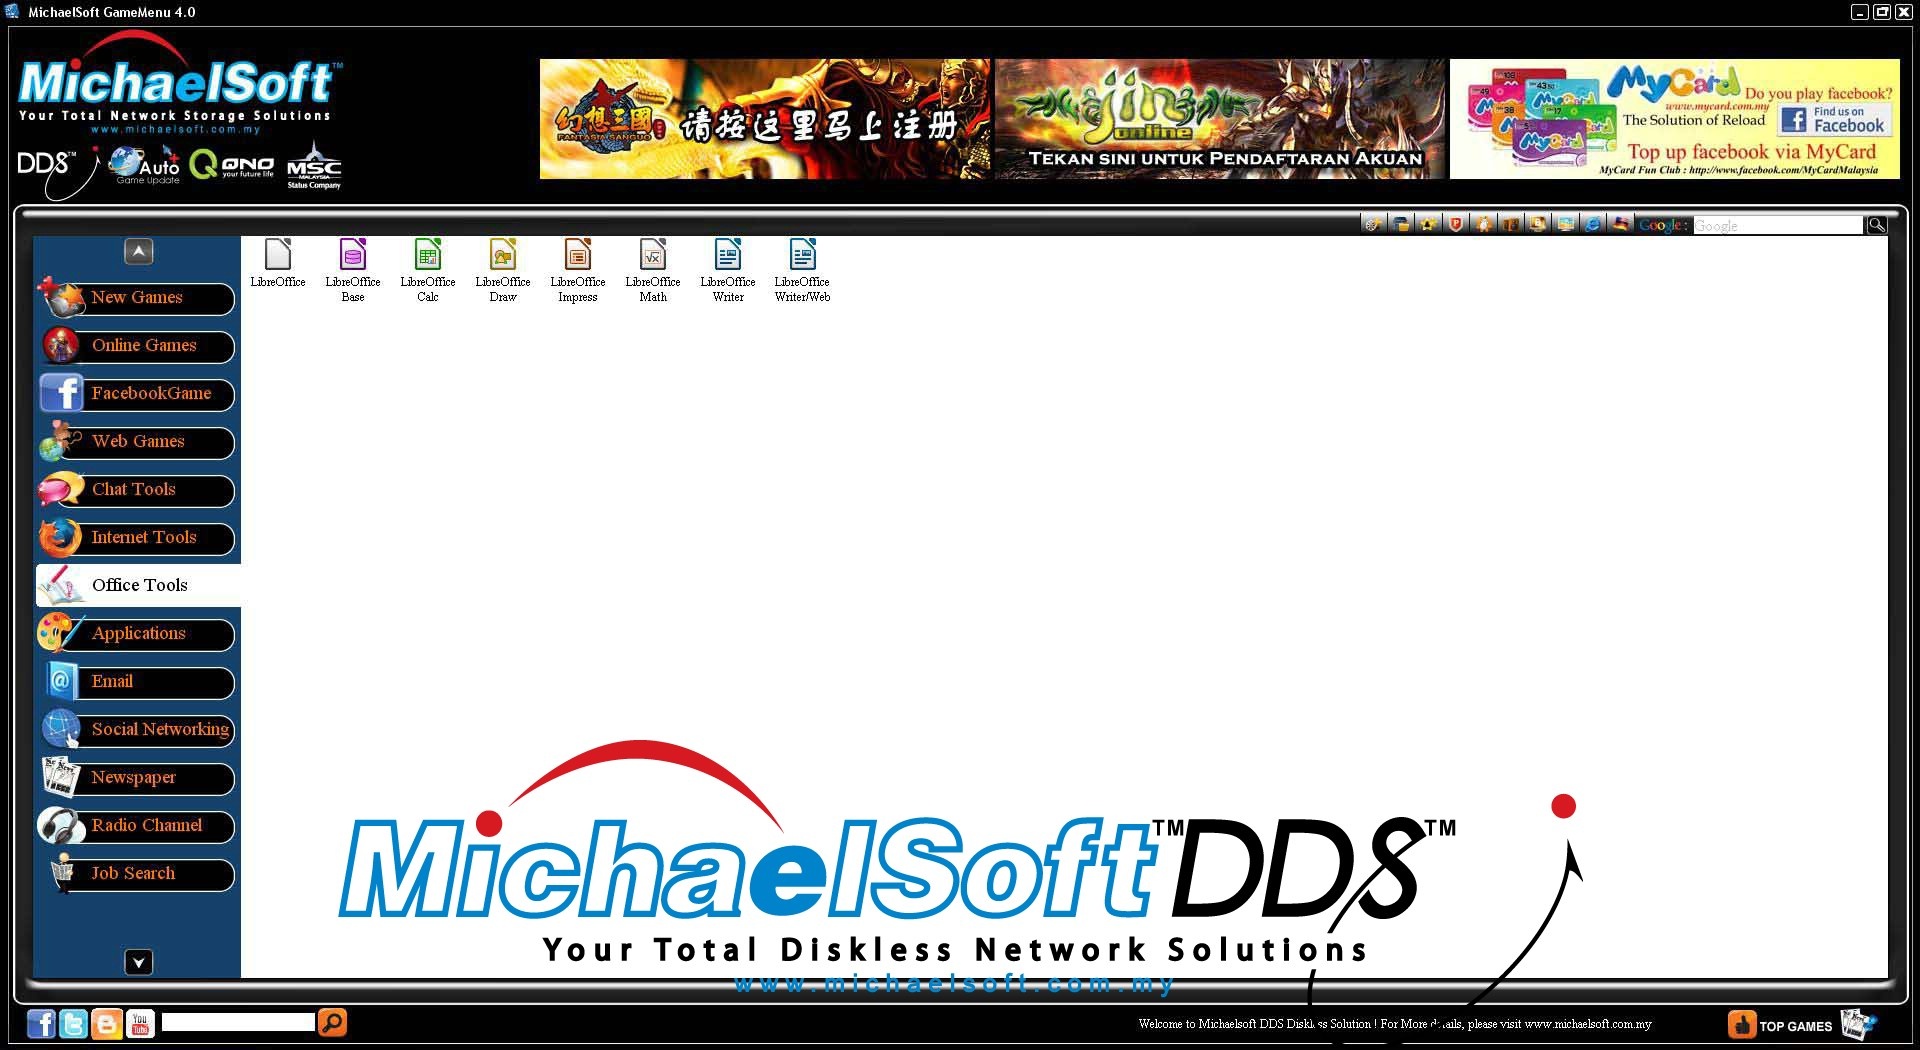 Michaelsoft DDS Diskless Solution , Cloud Computing , Diskless Cybercafe , Diskless System , Michaelsoft DDS Cybercafe Game Menu (Office Tools)-Open office can perform the basic functions as Microsoft Office. It is FREE~~